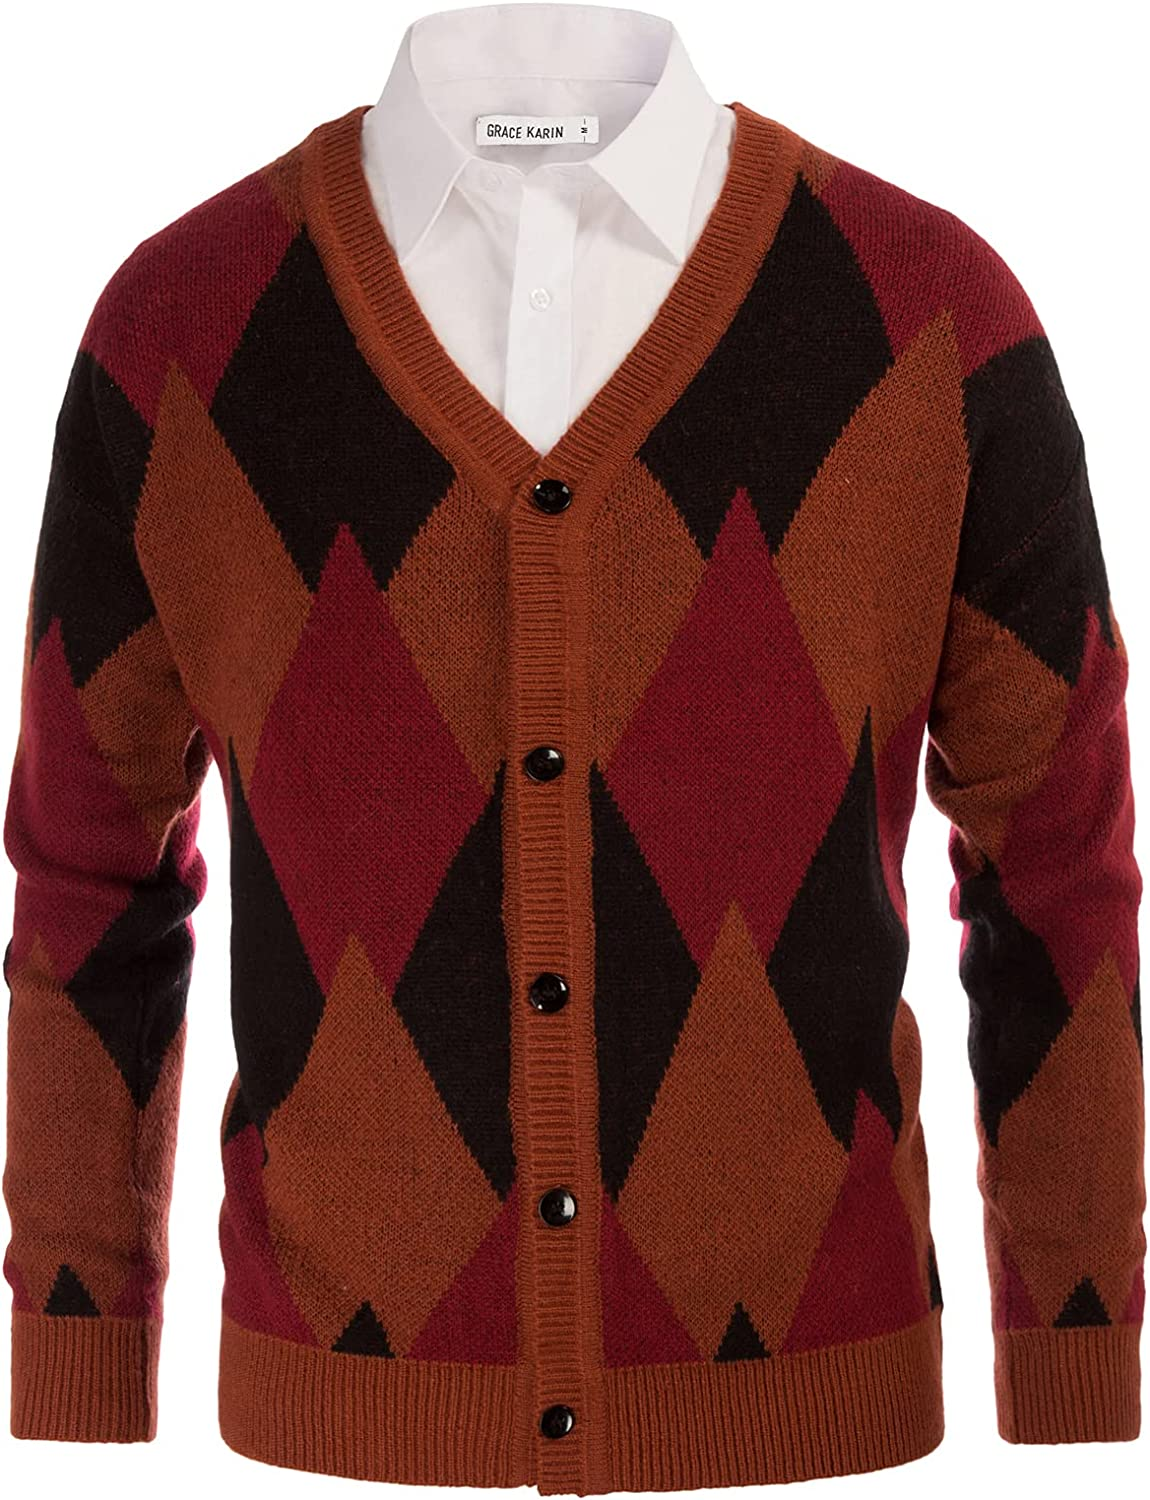 GRACE KARIN Men's V Neck Argyle Button Down Knitted Cardigan Sweater Casual Long Sleeve Contrast Knitwear